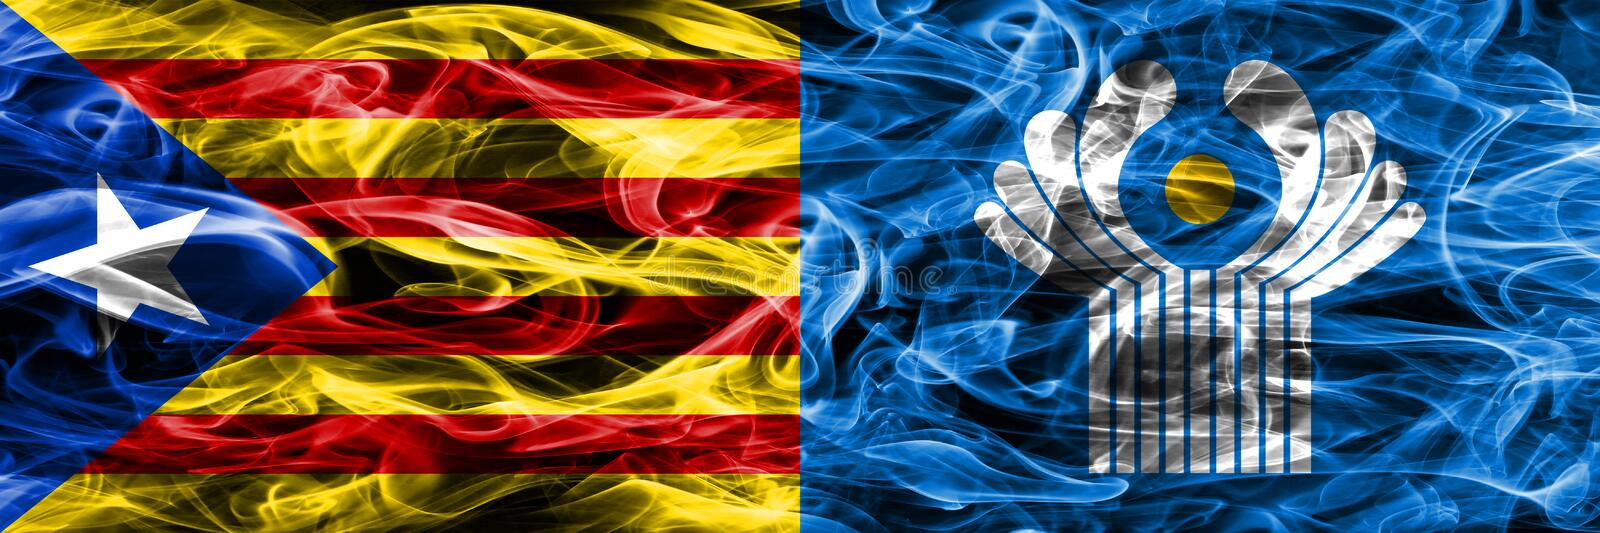 Catalonia vs Commonwealth copy smoke flags placed side by side. Thick colored silky smoke flags of Catalan and Commonwealth copy.  stock illustration